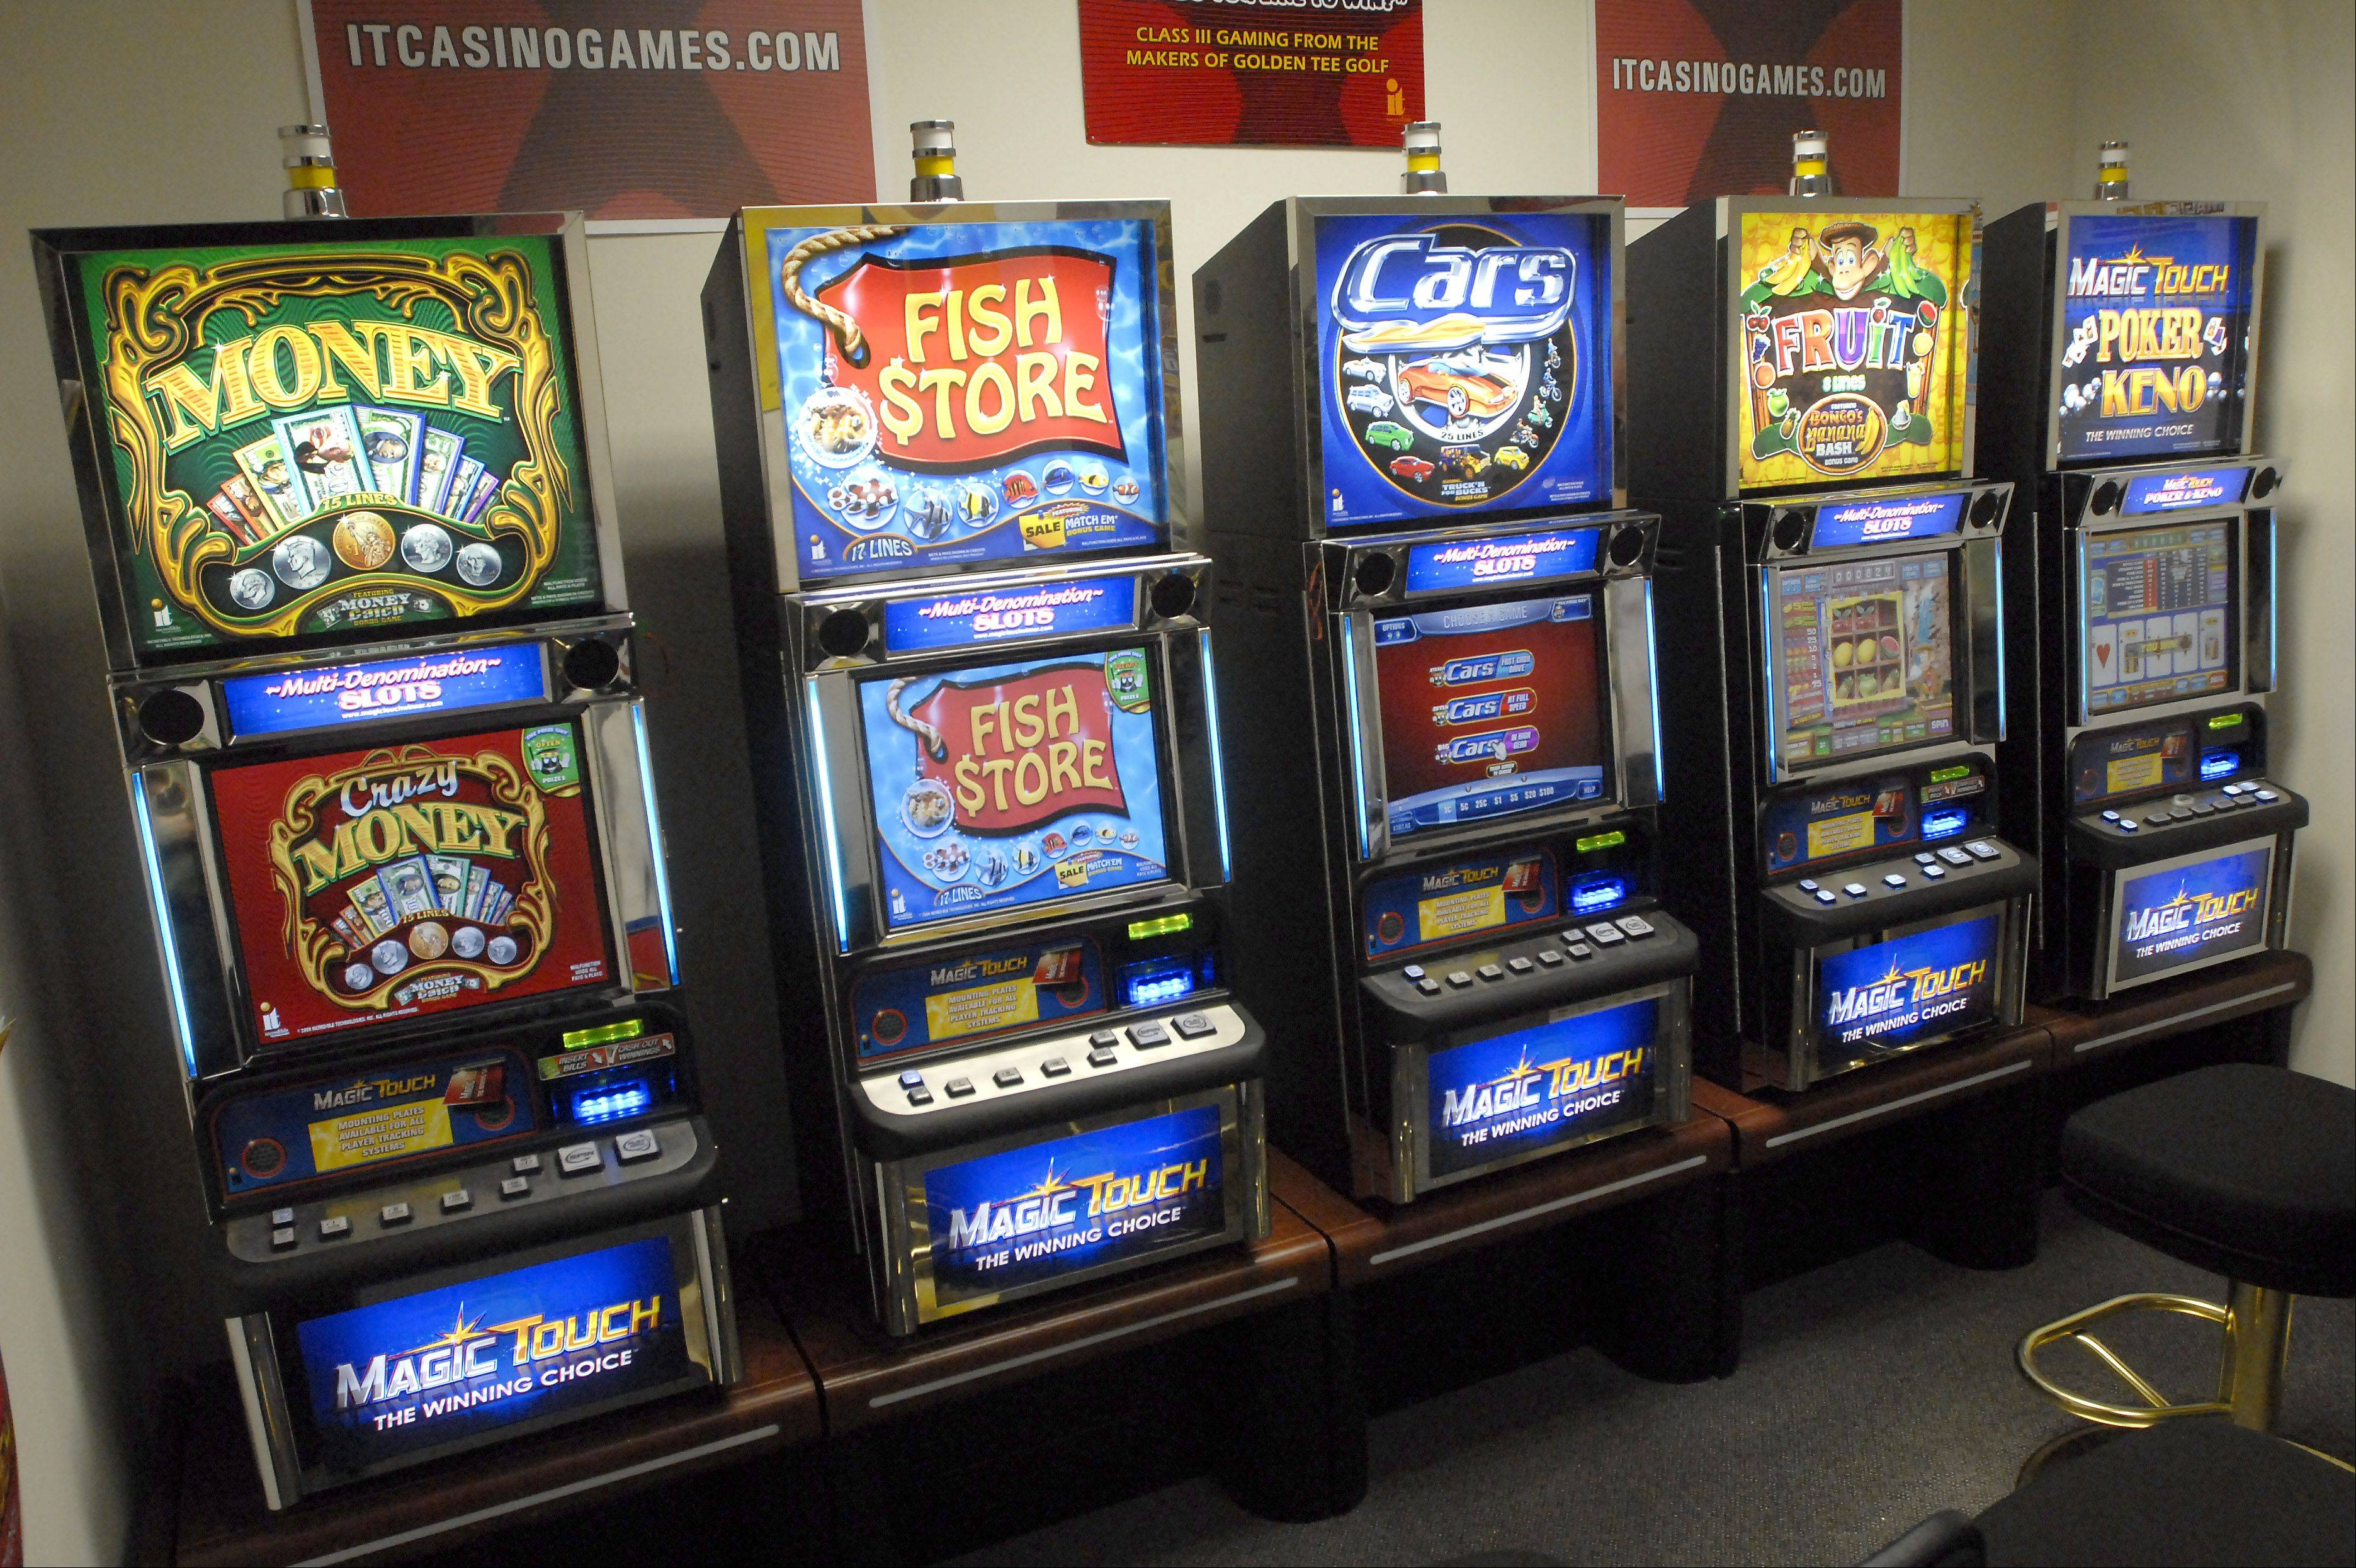 Video gambling machines like these could soon be added to